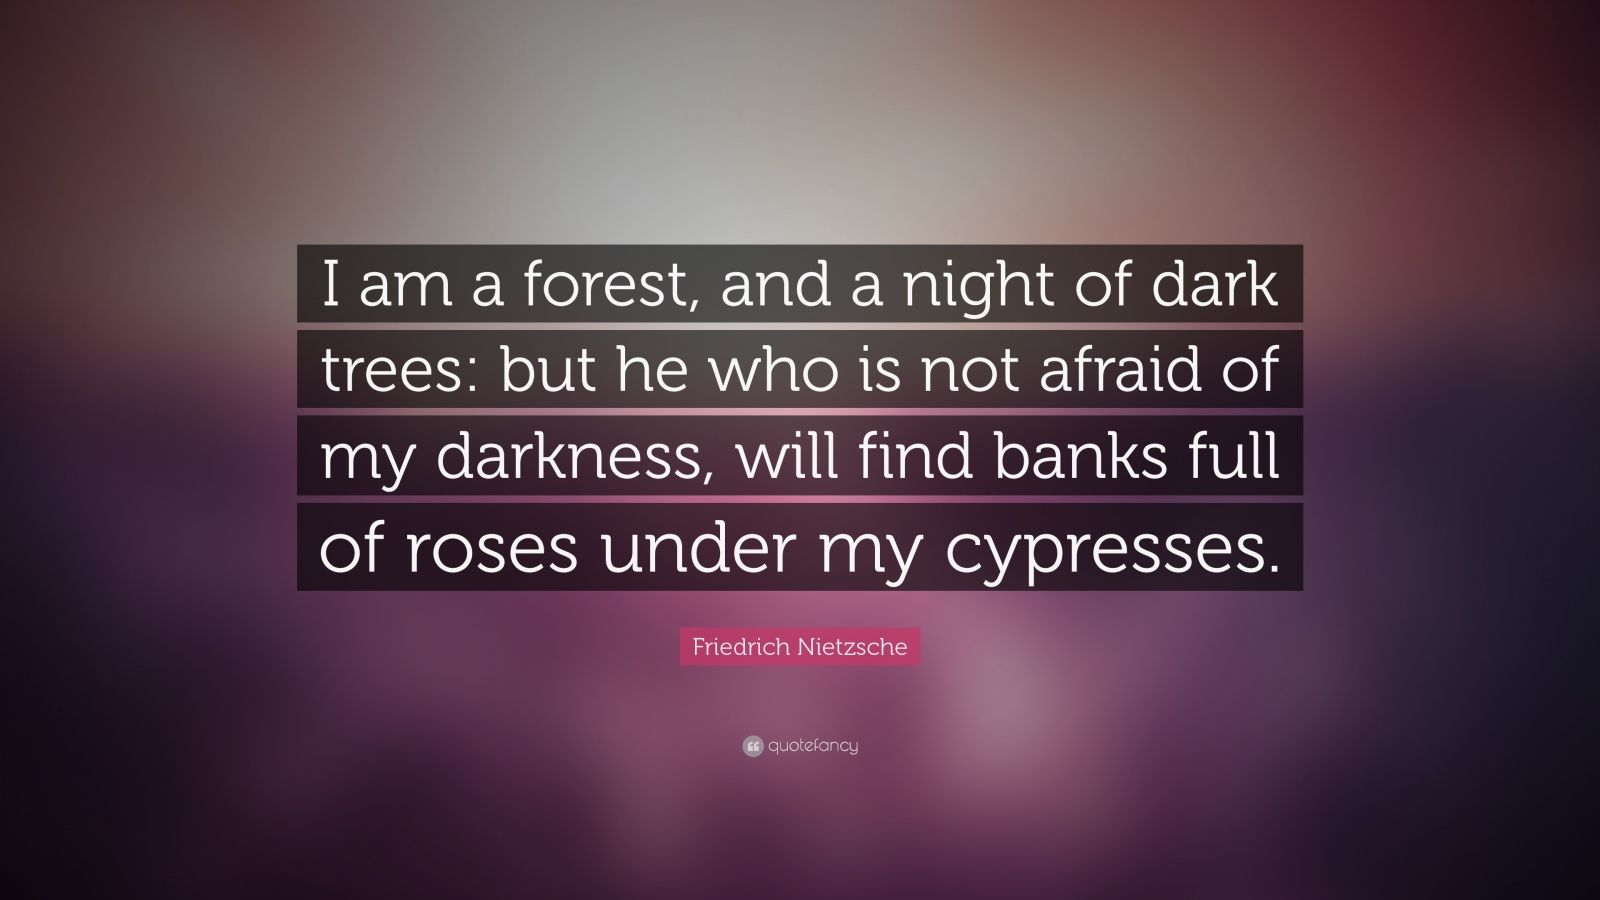 Wallpapers Philosophy Quotes Friedrich Nietzsche Quote I Am A Forest And A Night Of